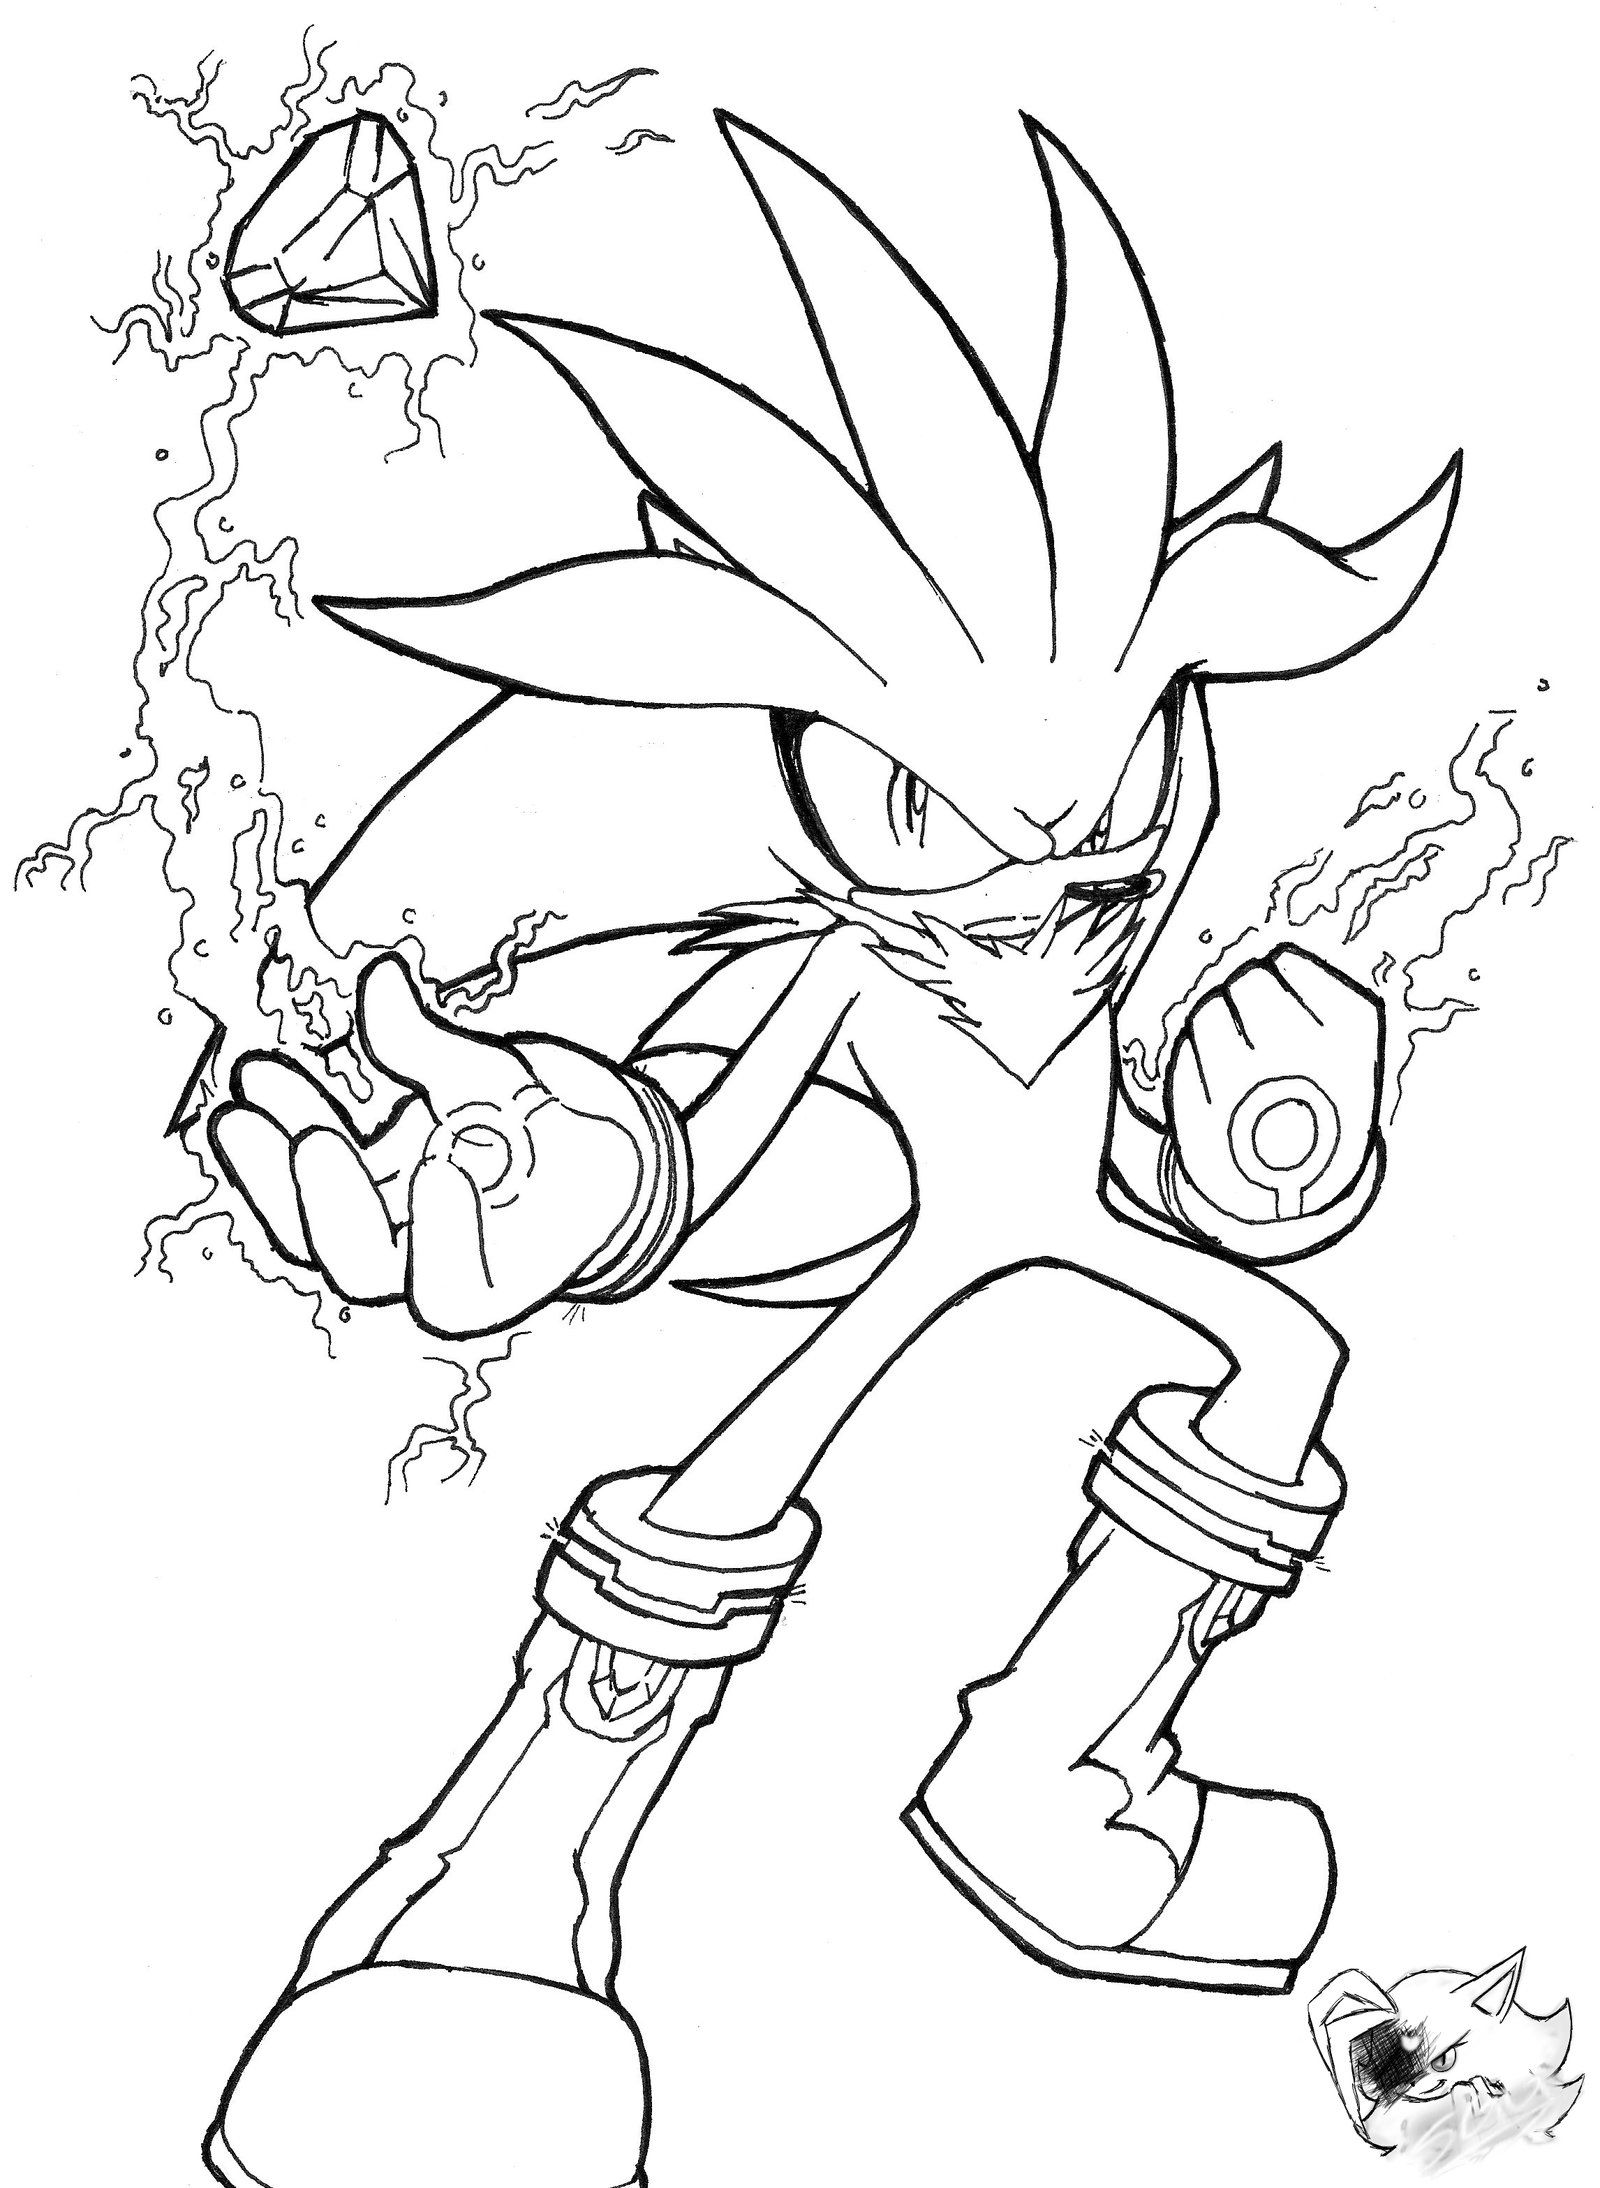 Silver The Hedgehog Line Art By Sonicgirlgamer71551 On Deviantart Fox Coloring Page Hedgehog Colors Disney Coloring Pages